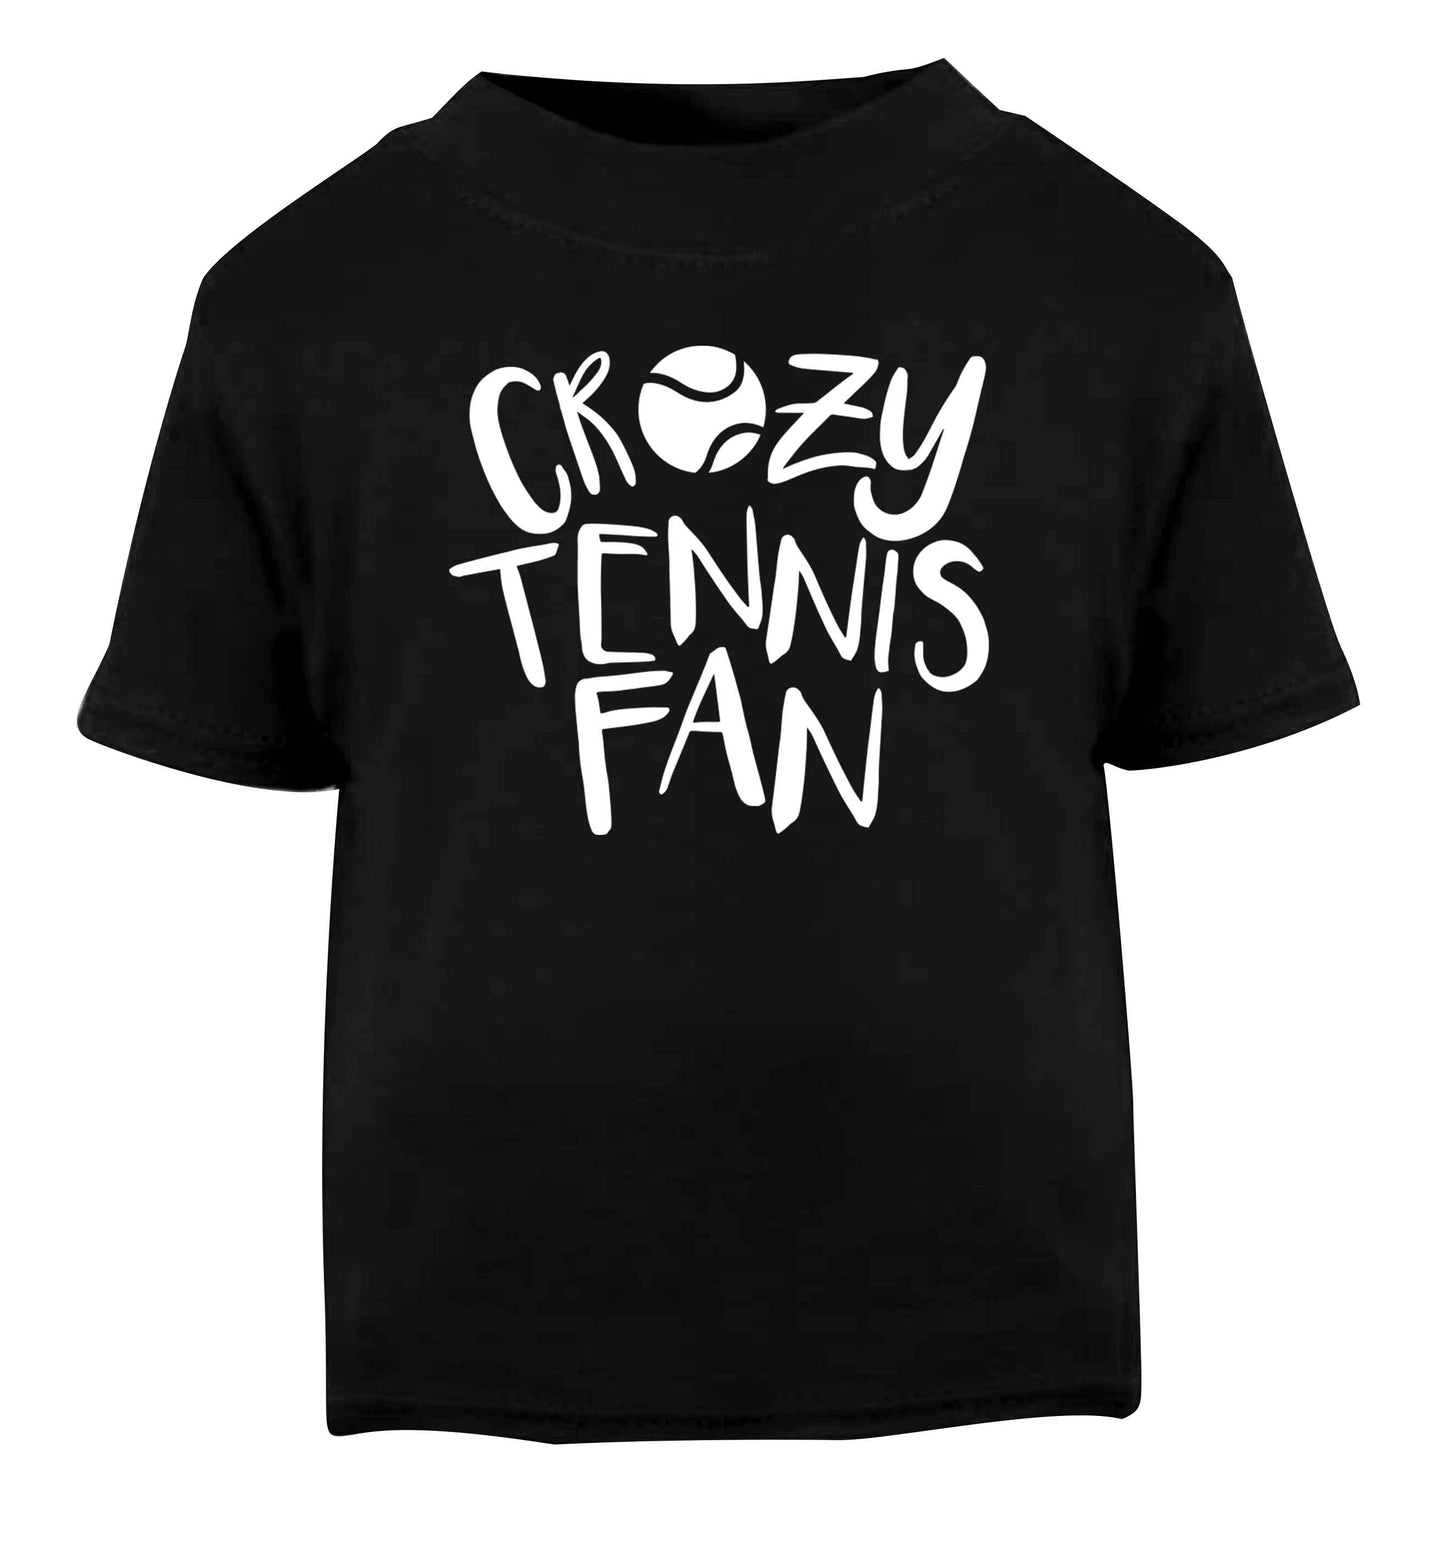 Crazy tennis fan Black Baby Toddler Tshirt 2 years